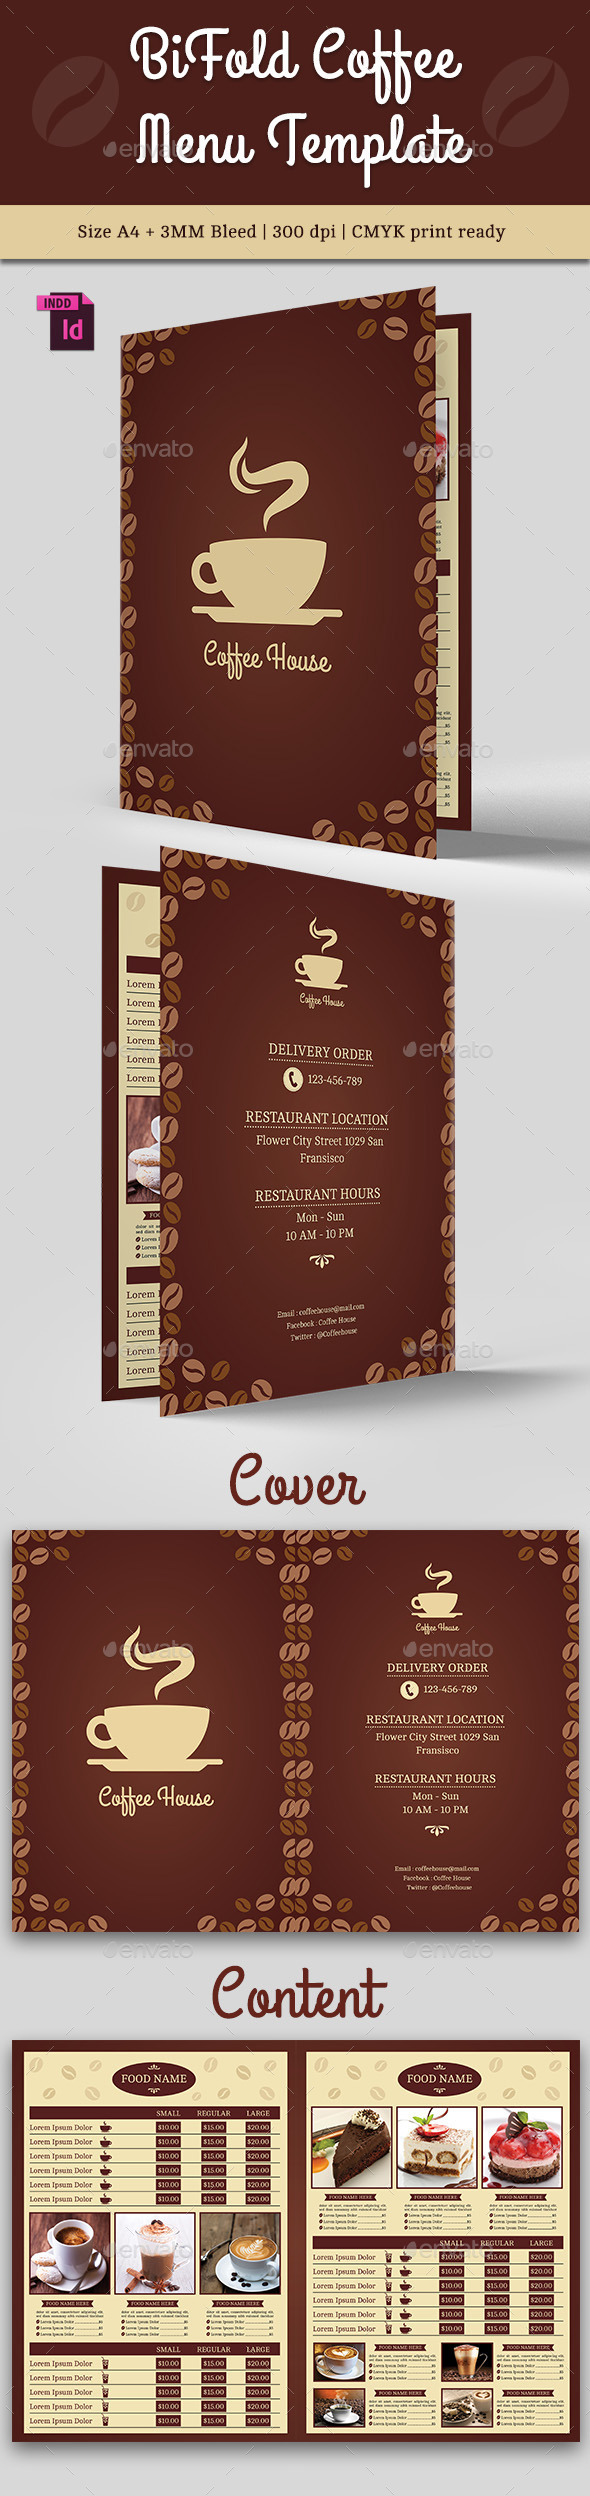 BiFold Coffee Menu Template Vol. 2 - Food Menus Print Templates